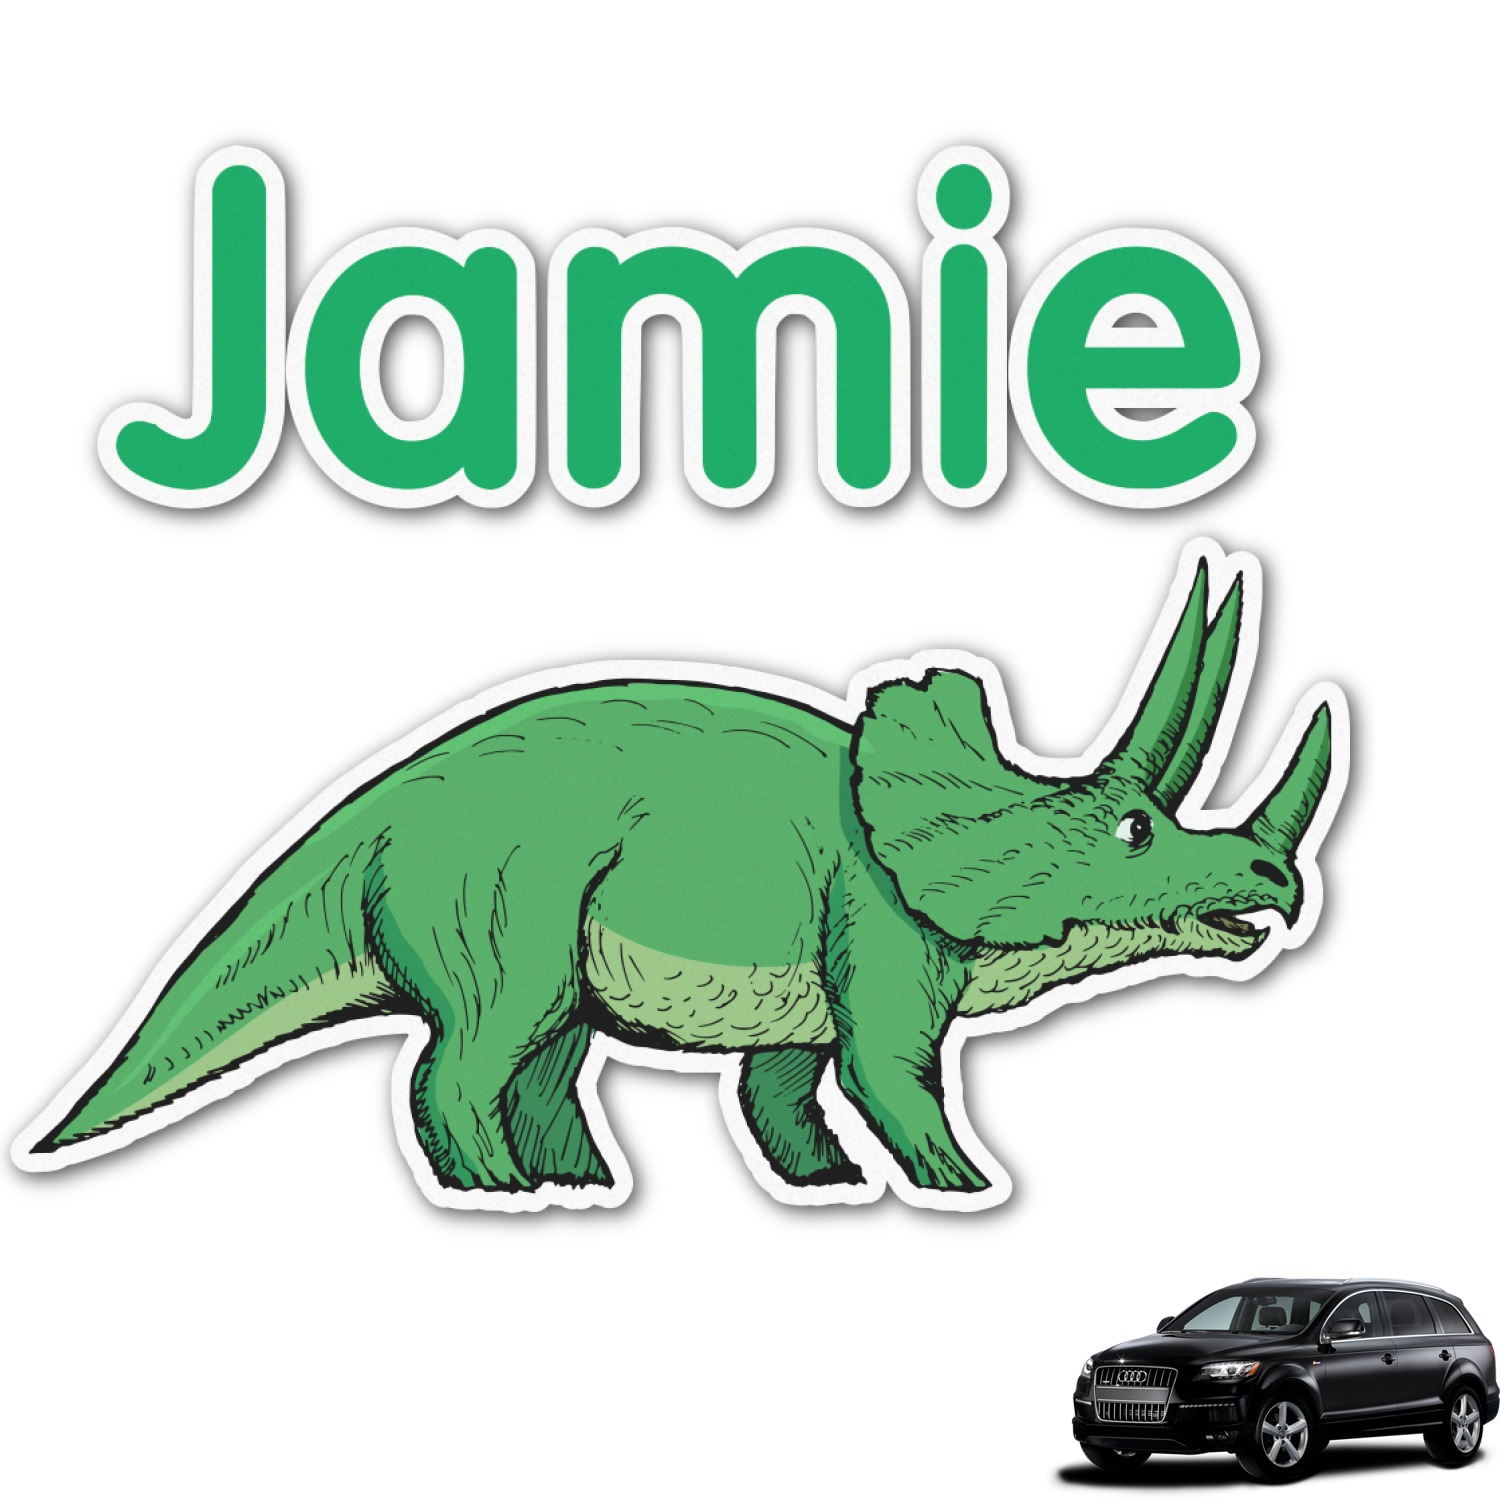 Dinosaurs Graphic Car Decal Personalized